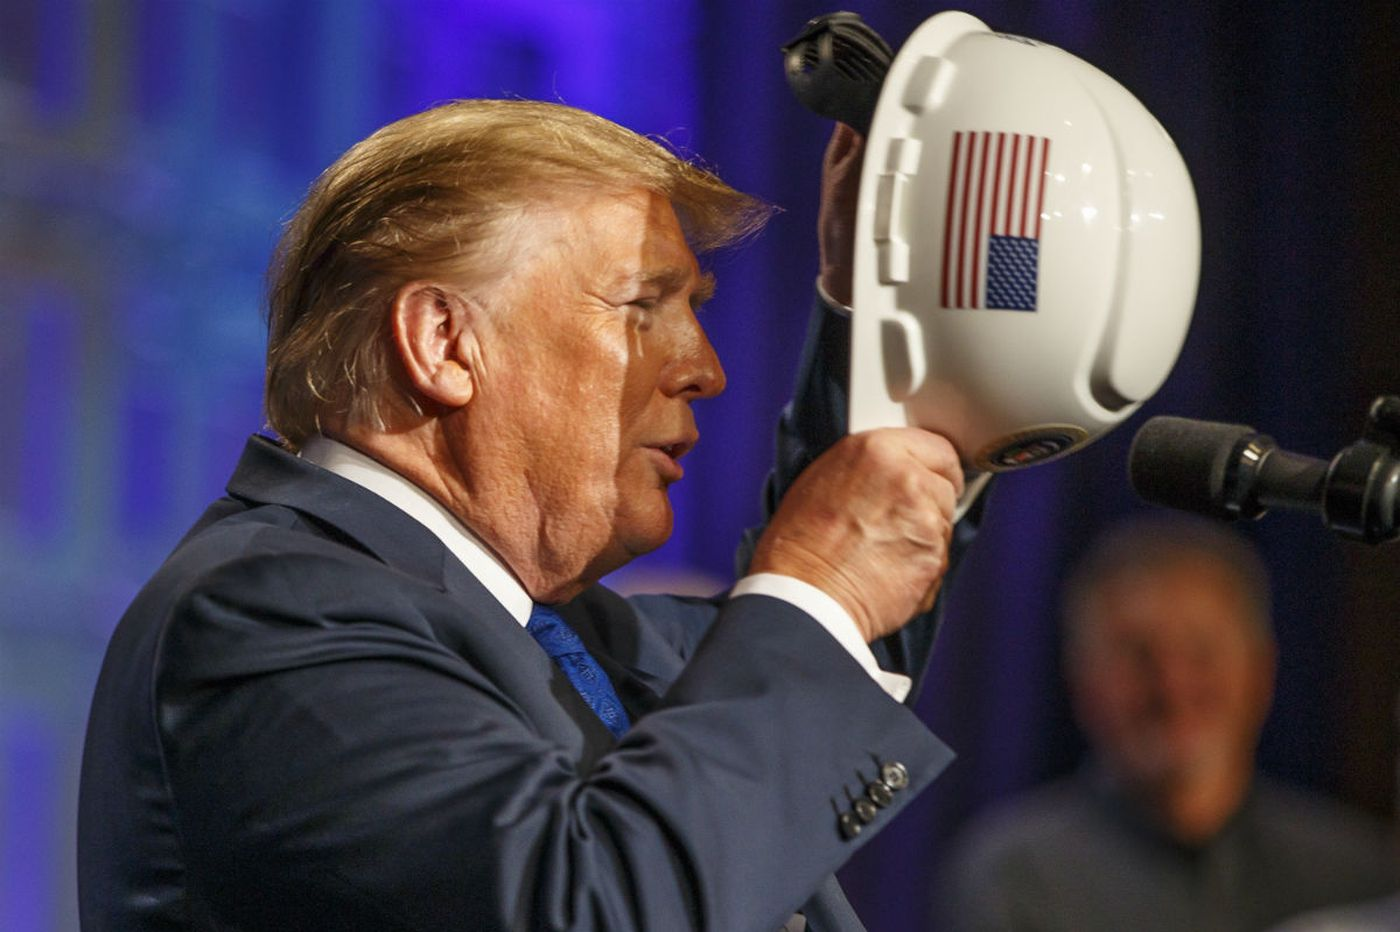 President Trump hails 'best economy in our history' in Philly speech to electrical contractors